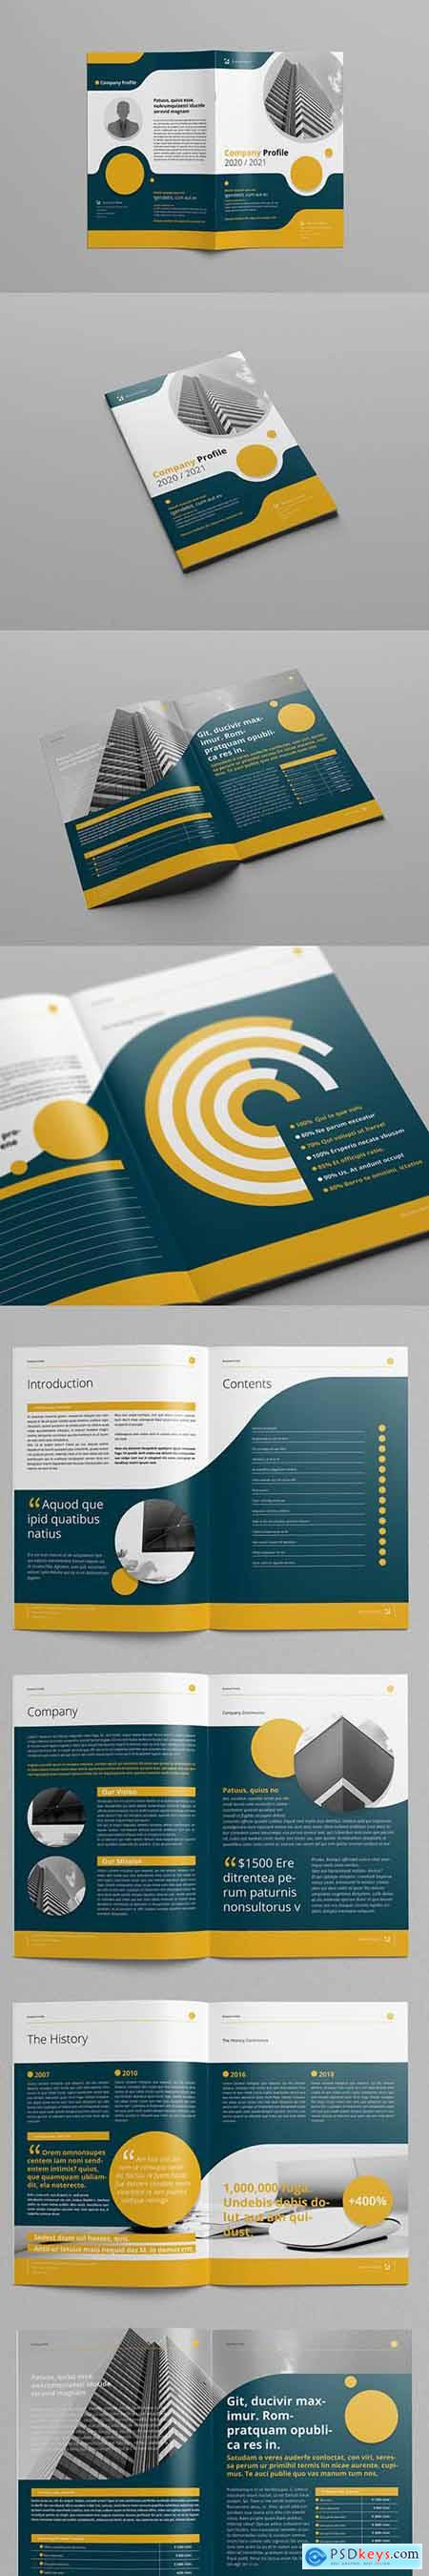 Business Proposal Layout with Yellow and Gray Accents 208112811